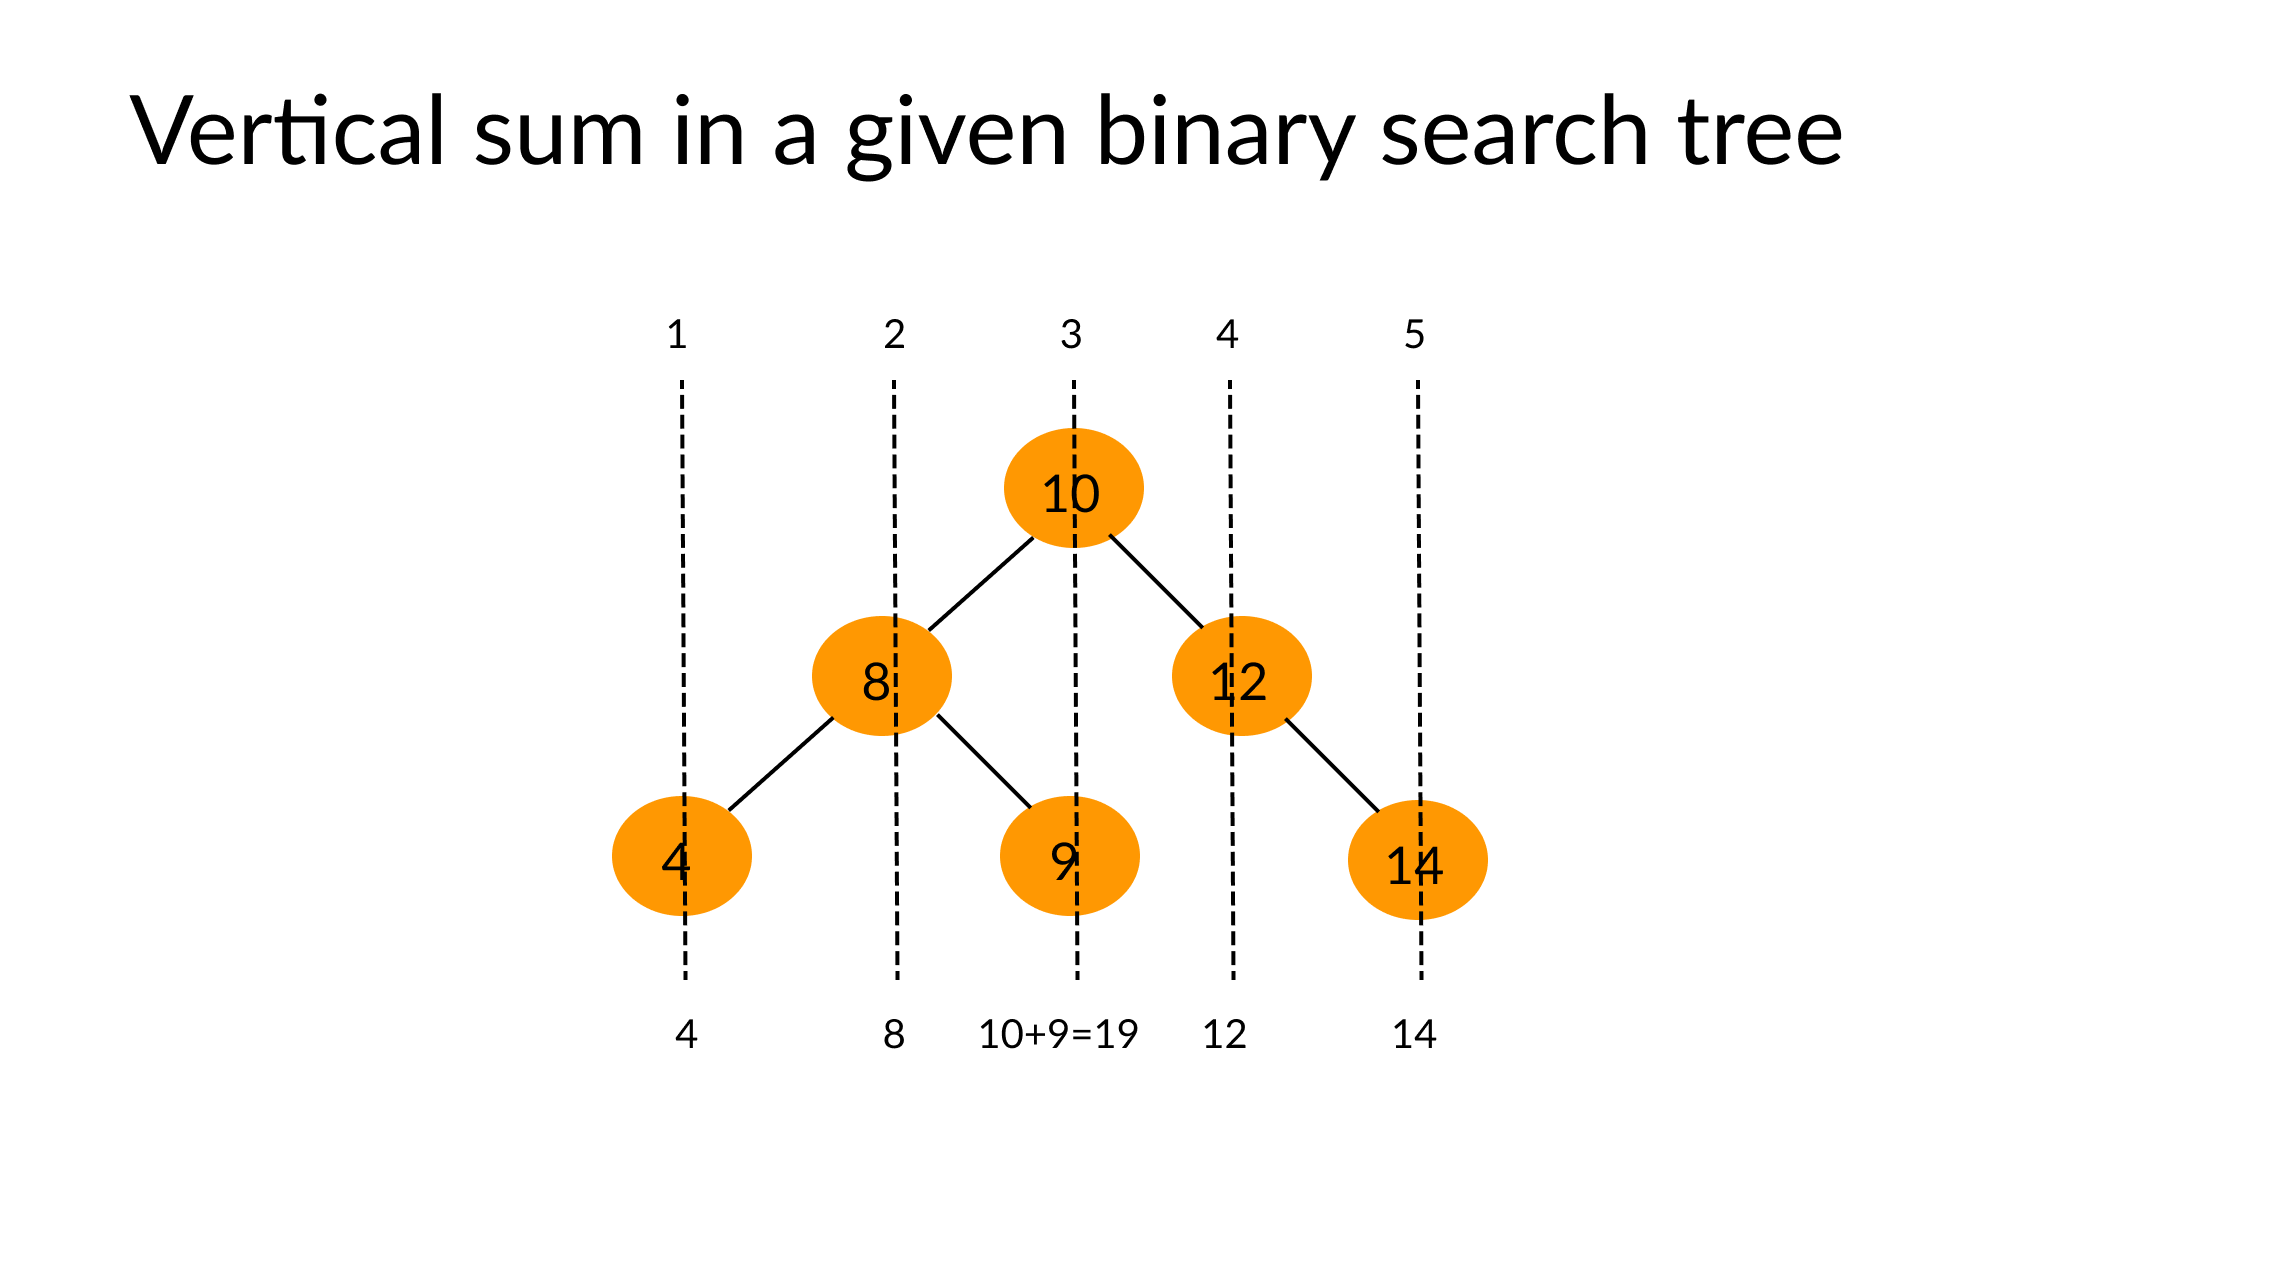 vertical sum in a given binary search tree